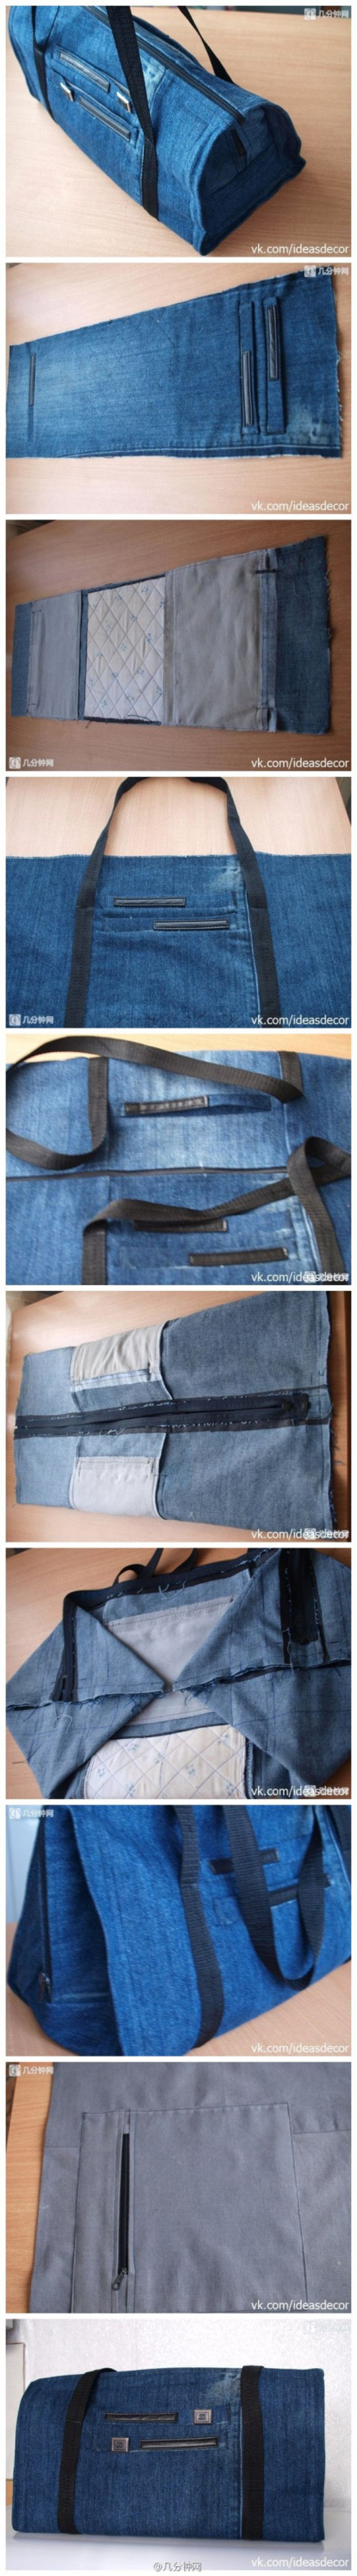 Jeans, handbags transformation, the effect is too praised!  !  !